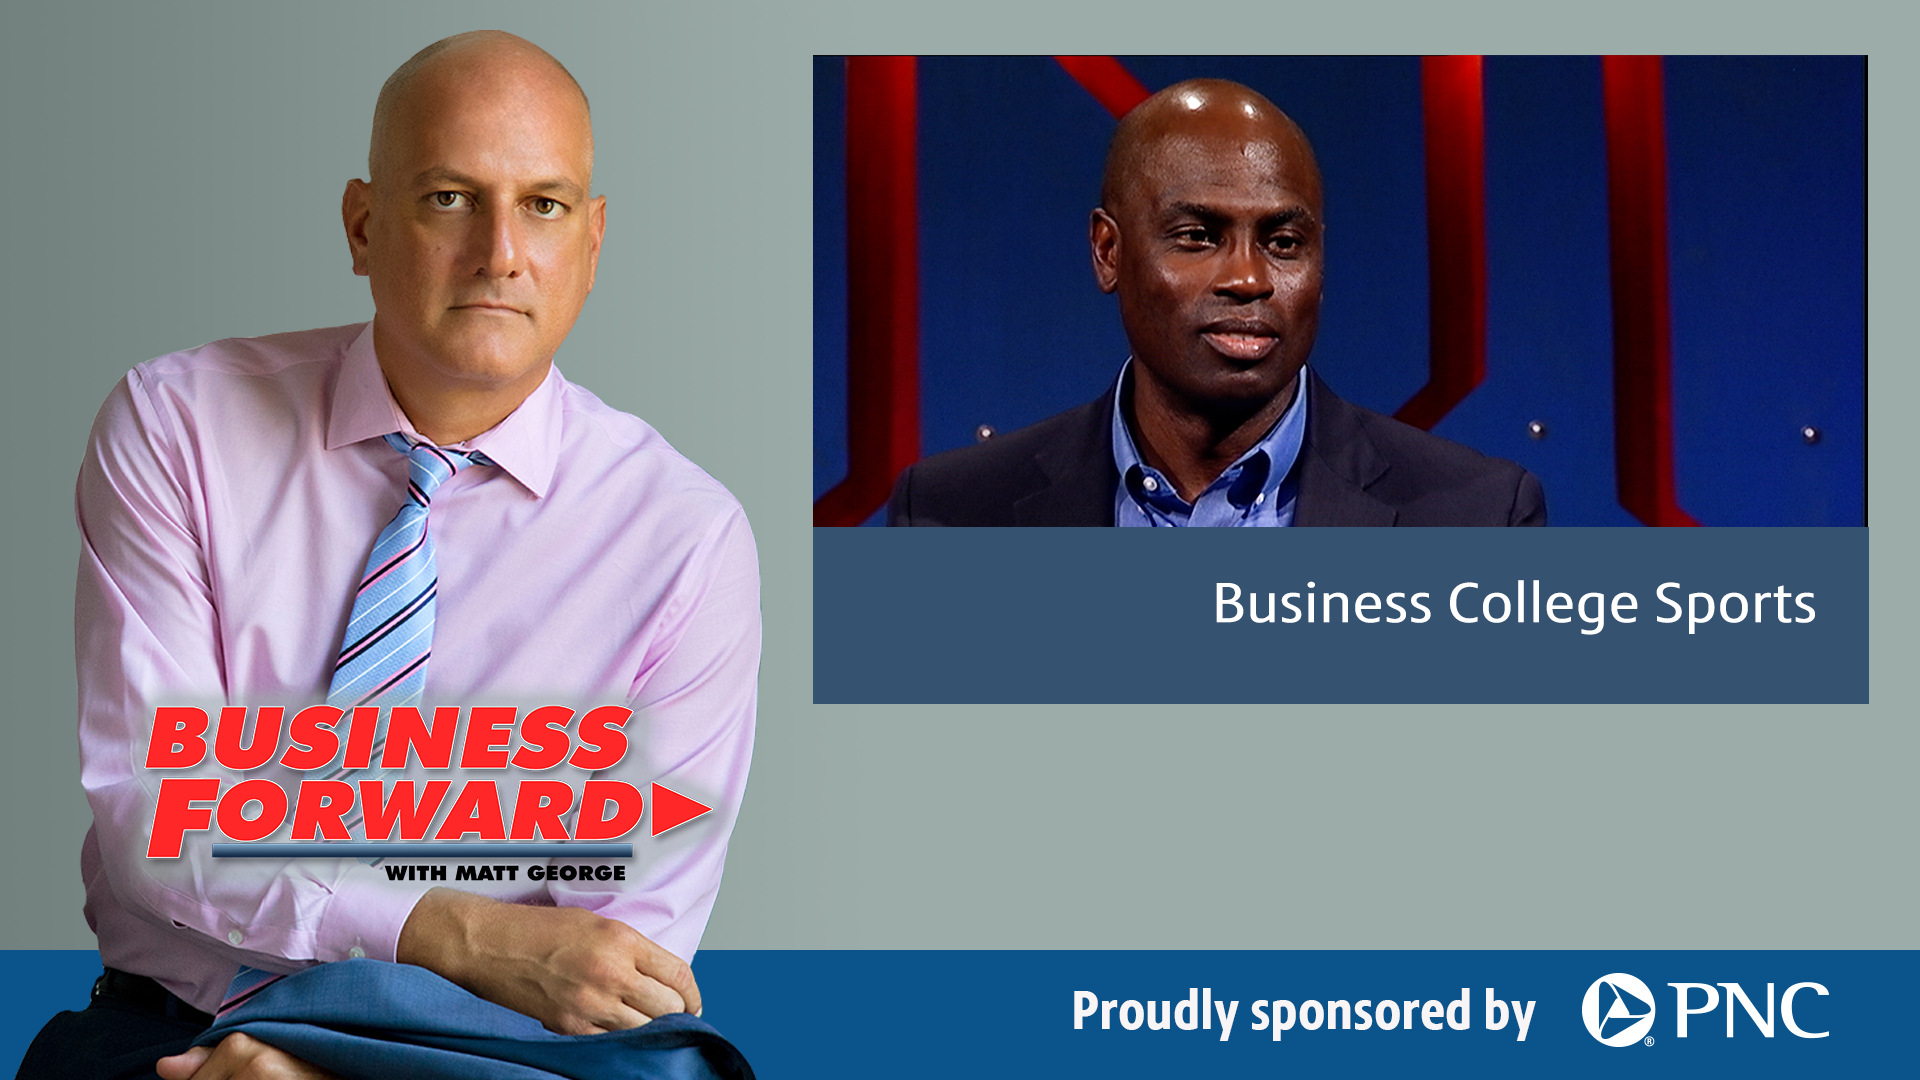 Business Forward with Matt George | Business College Sports